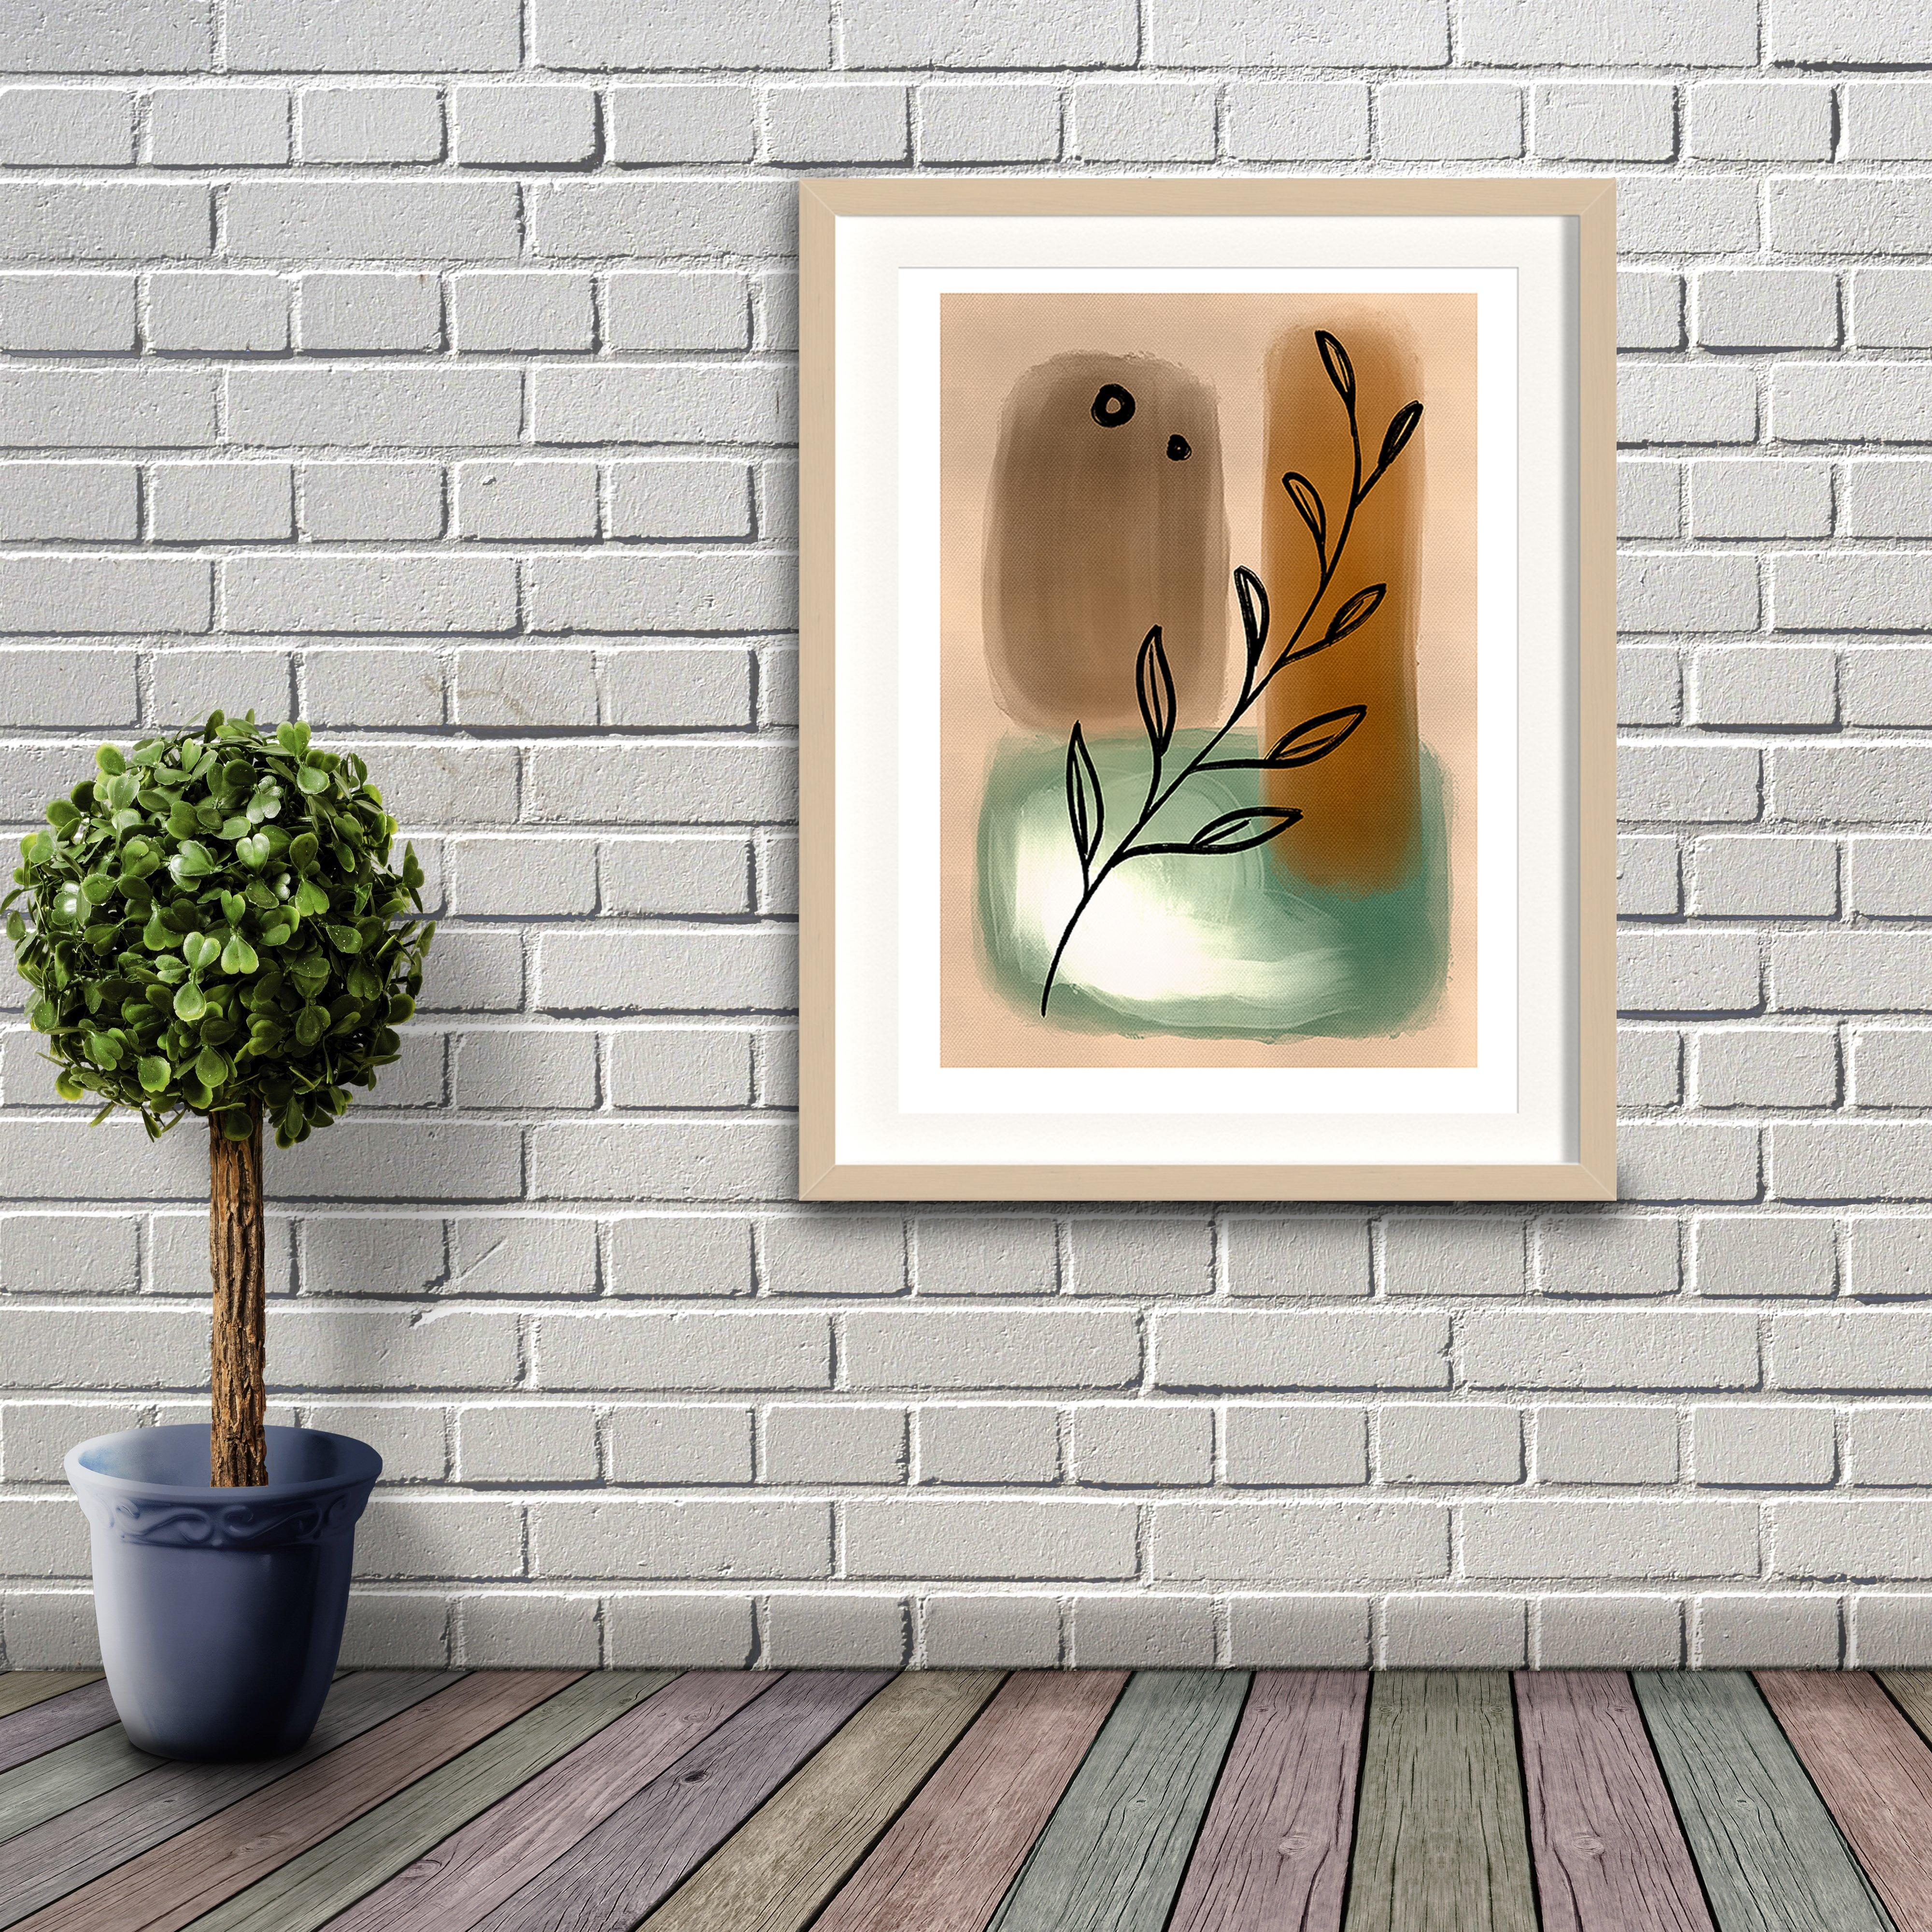 An abstract digital painting by Lily Bourne printed on eco fine art paper titled Tranquil Moment showing a line drawn olive branch over neutral green and brown painted hues. Artwork is shown in a black frame hanging on a brick wall.